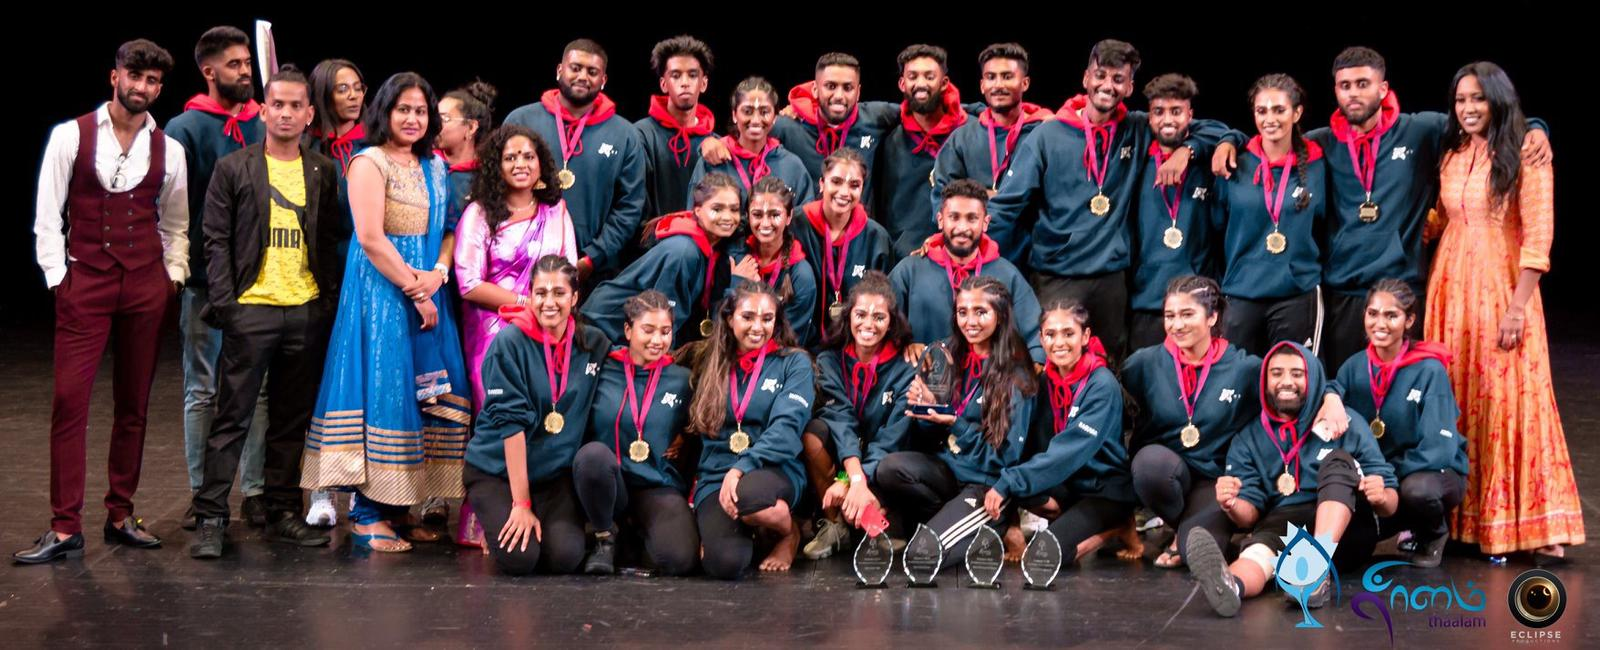 Thaalam 2019 Champions and recipients of Best Choreography Award, Best Theme Award, Best Audio Mix Award and Best Cheersquad Award